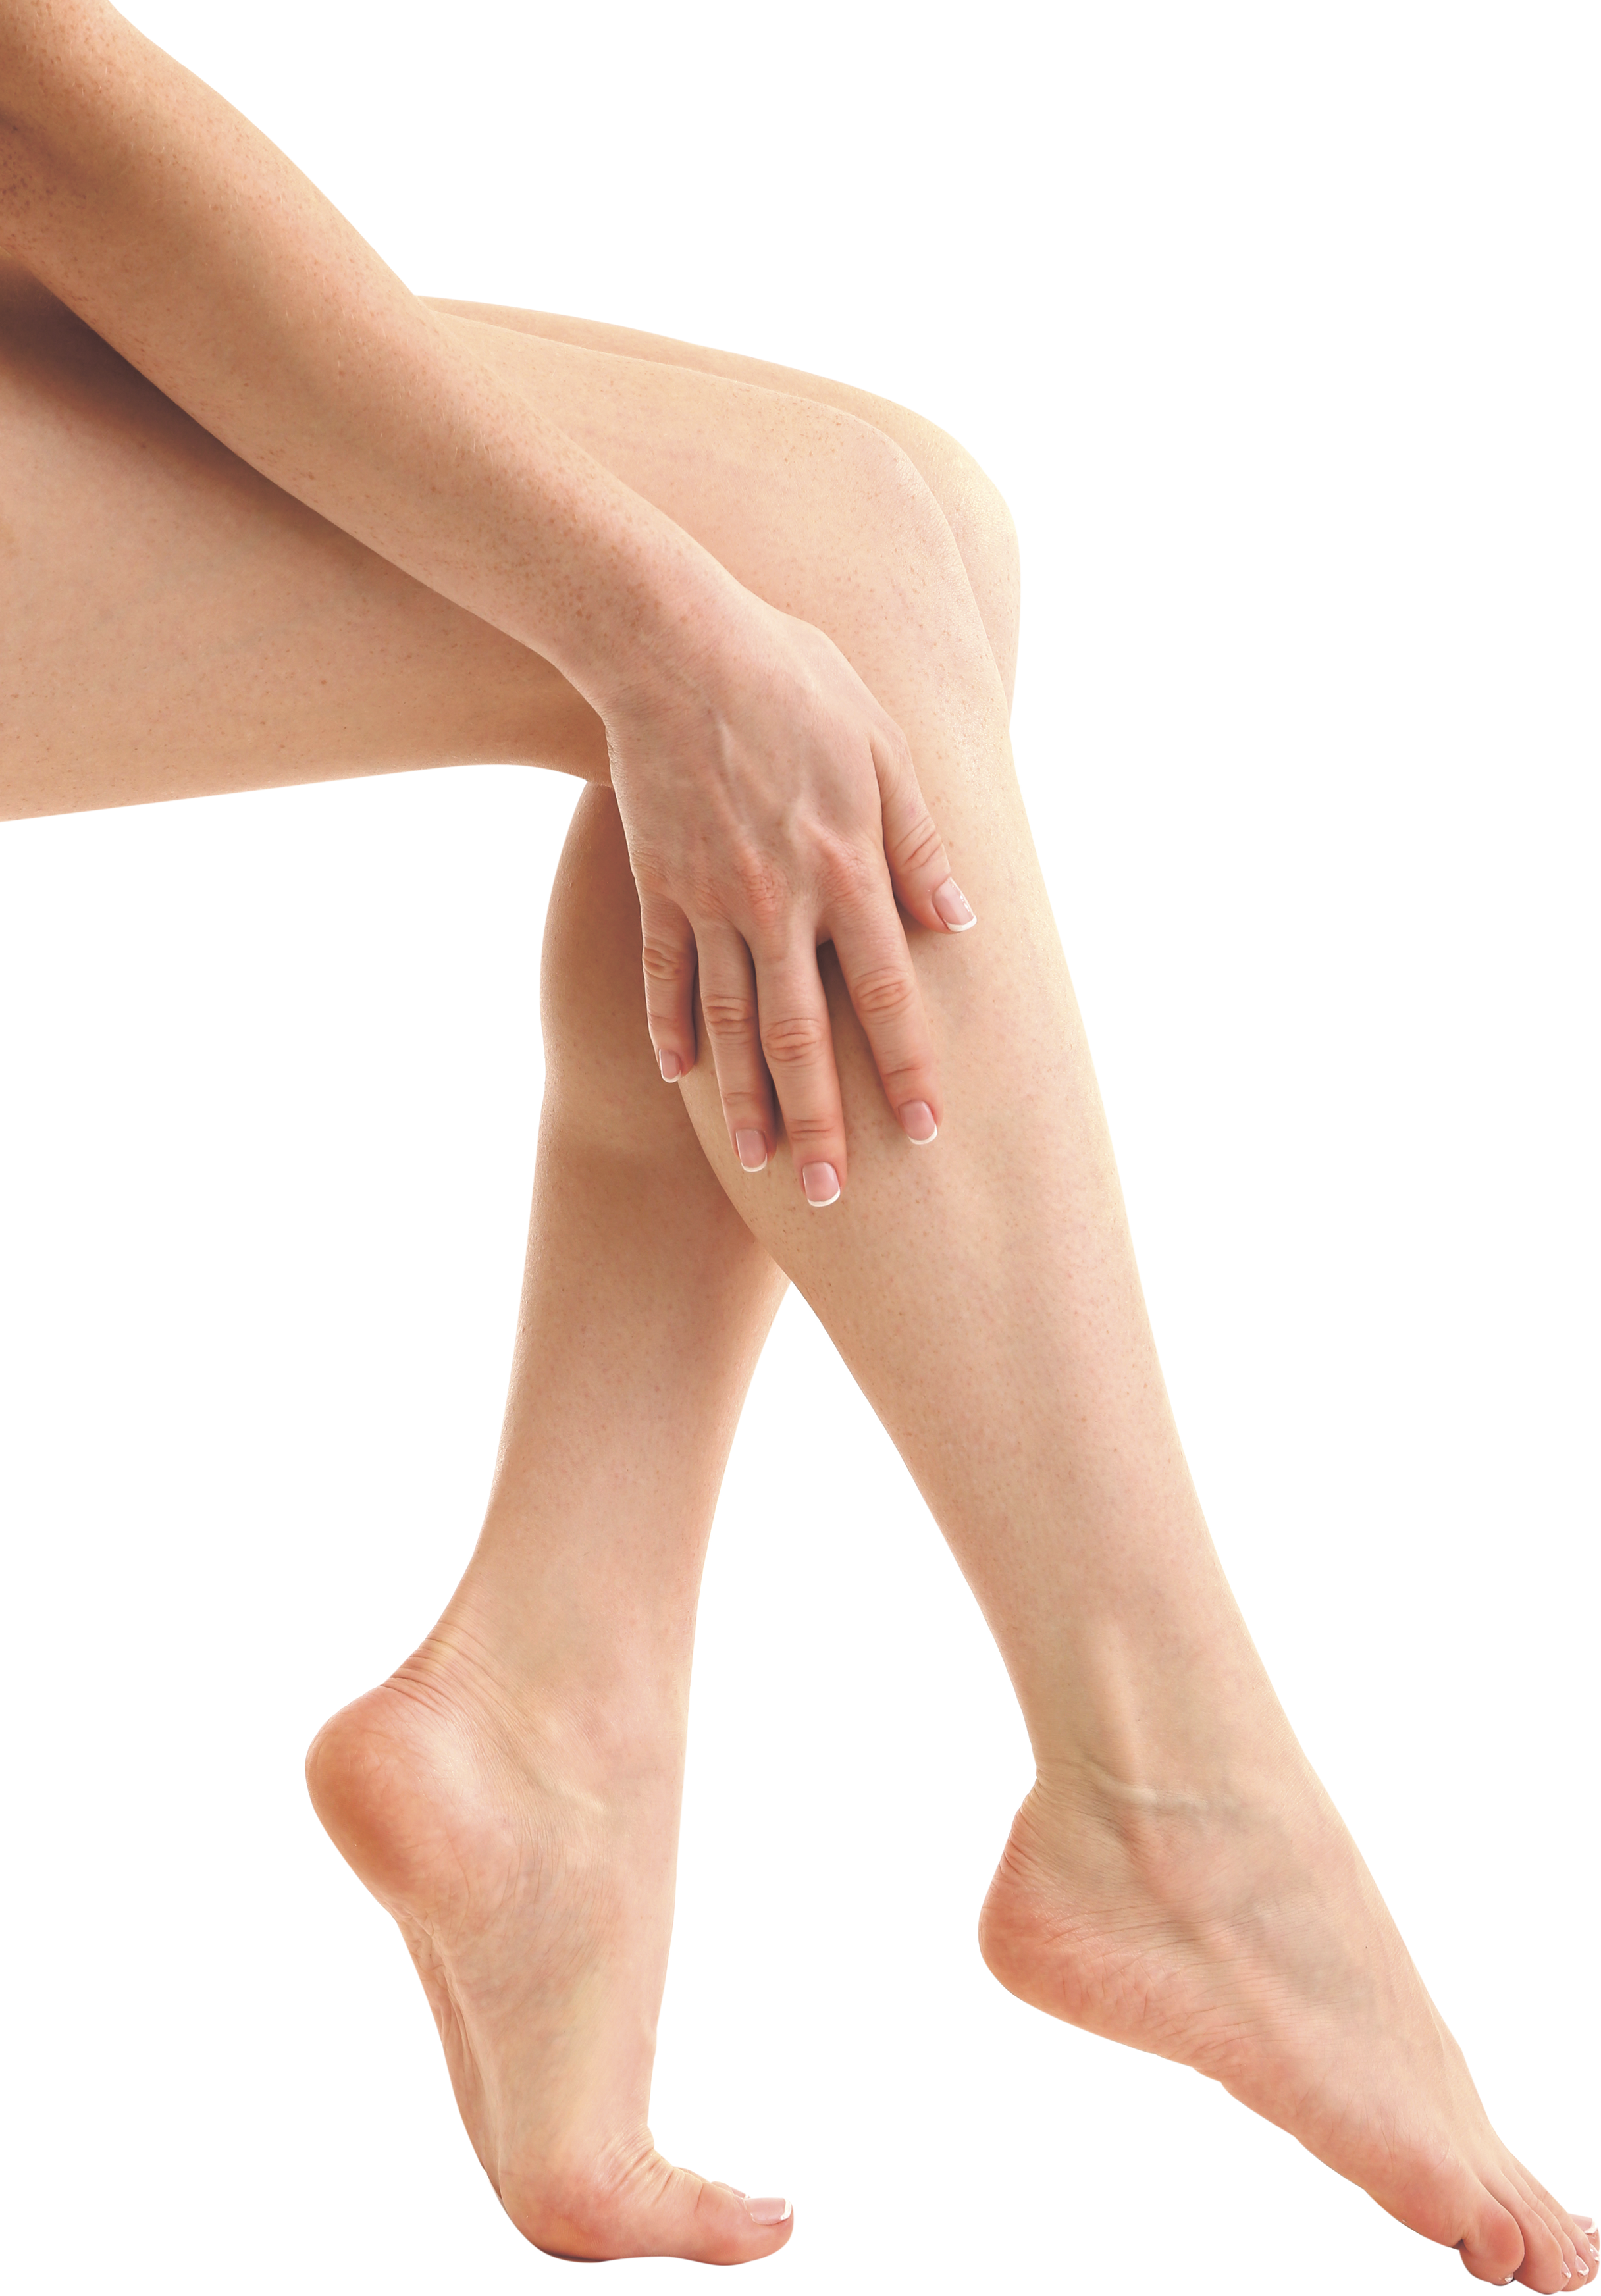 Legs and feet png. Images free download women